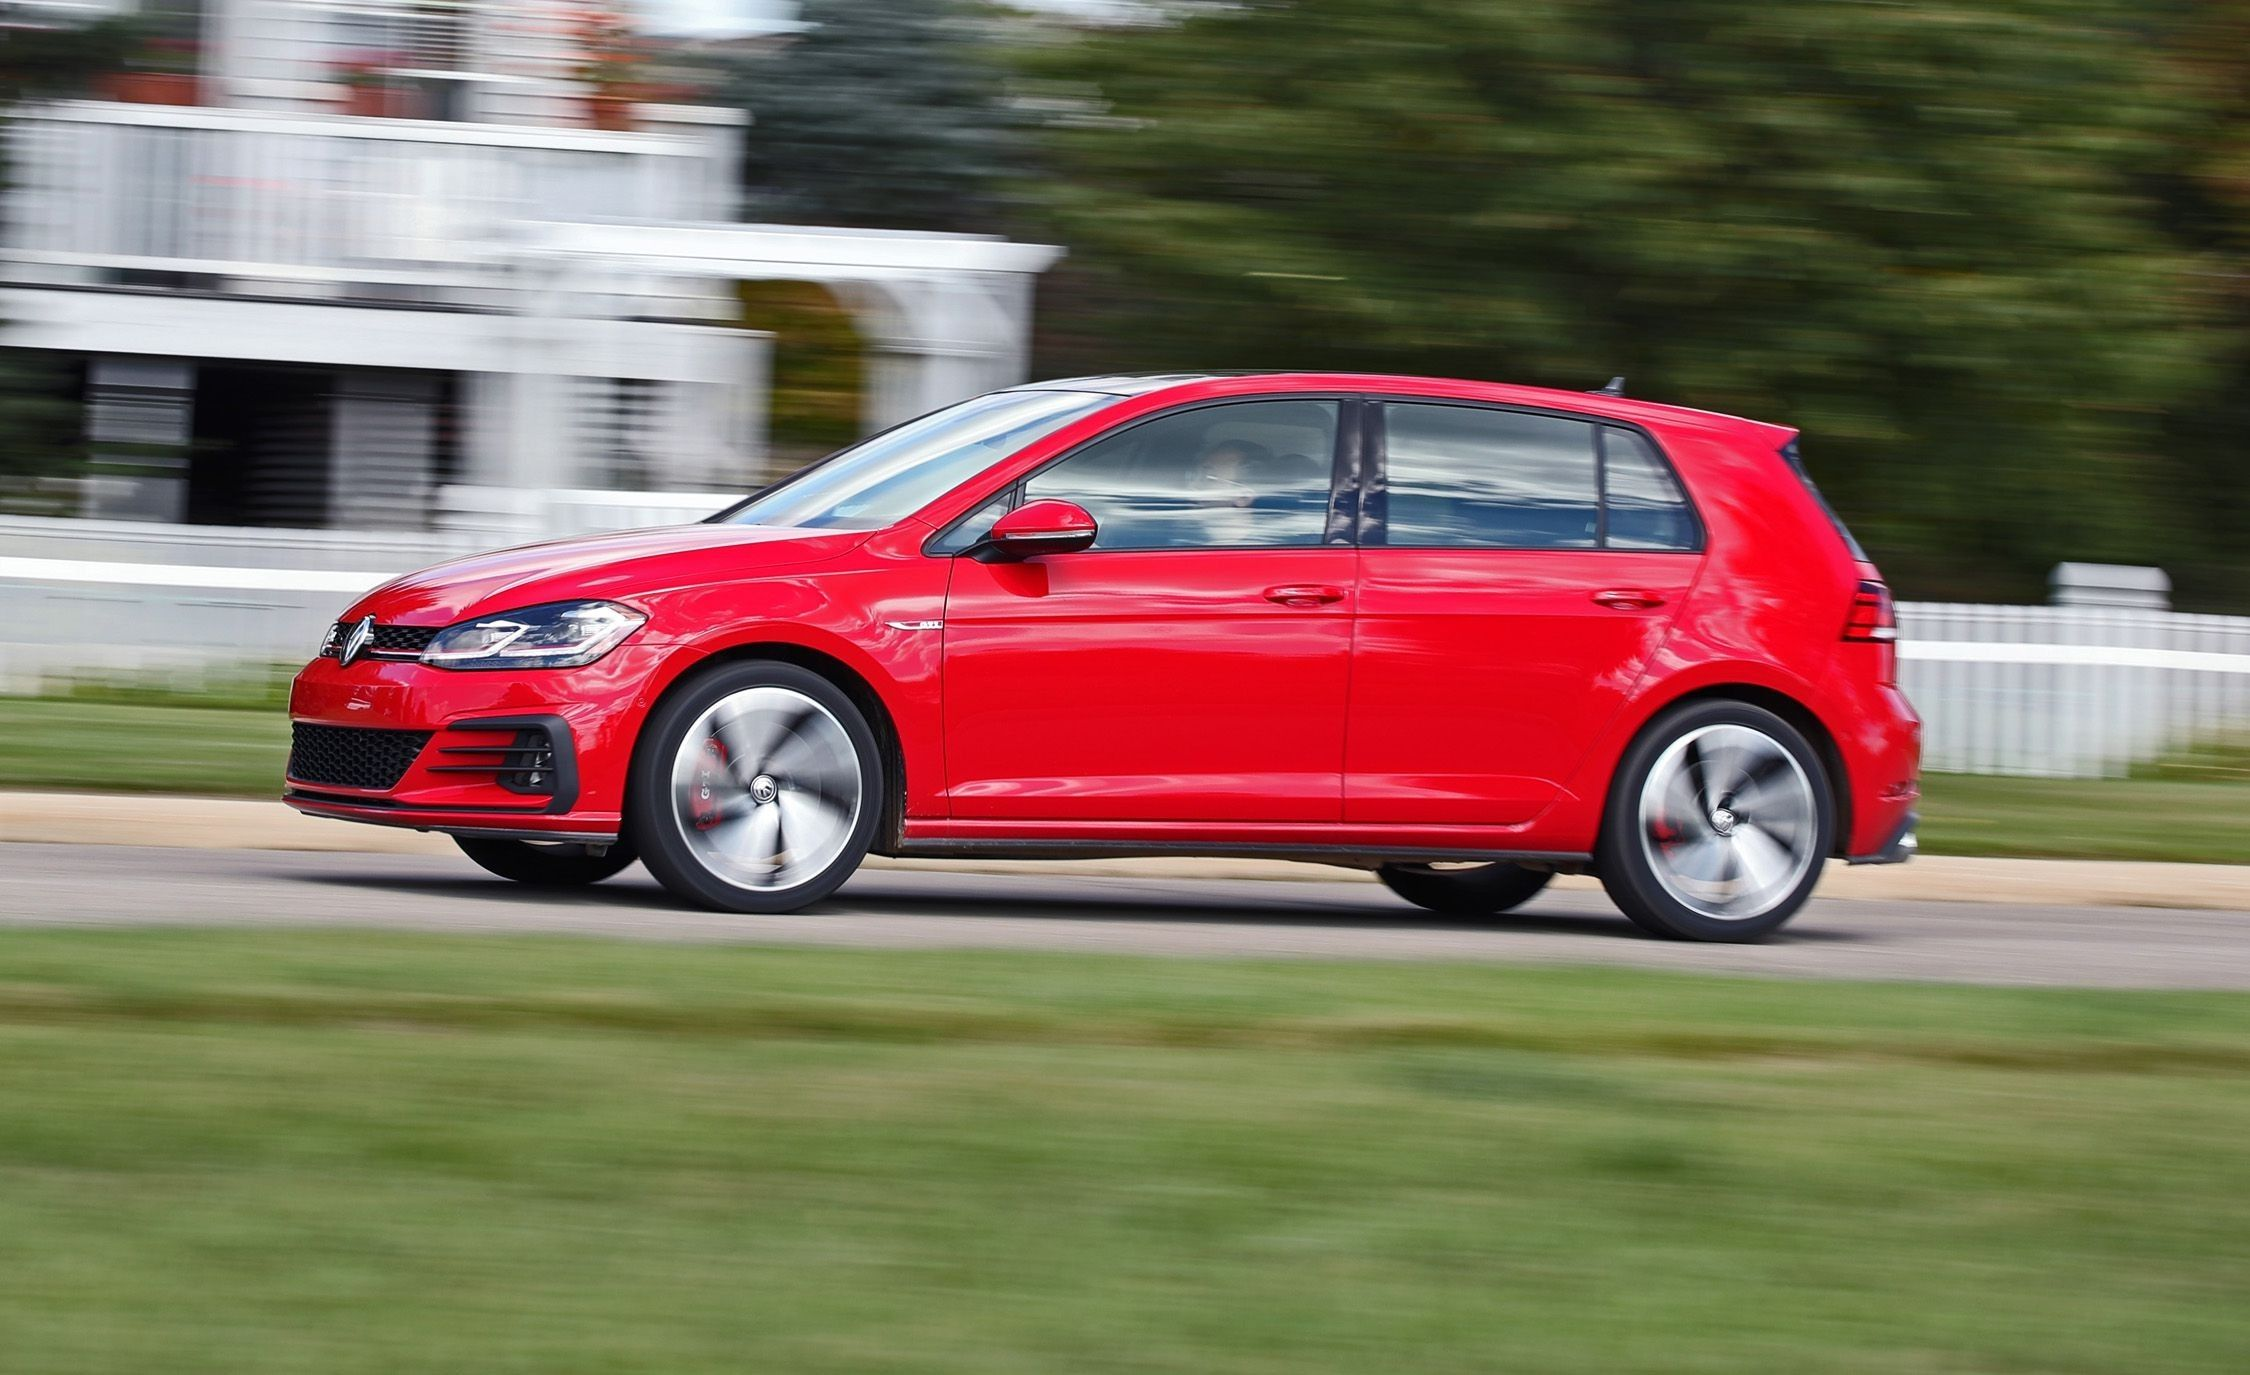 2018 Volkswagen Golf Gti Exterior And Interior Review Car Review